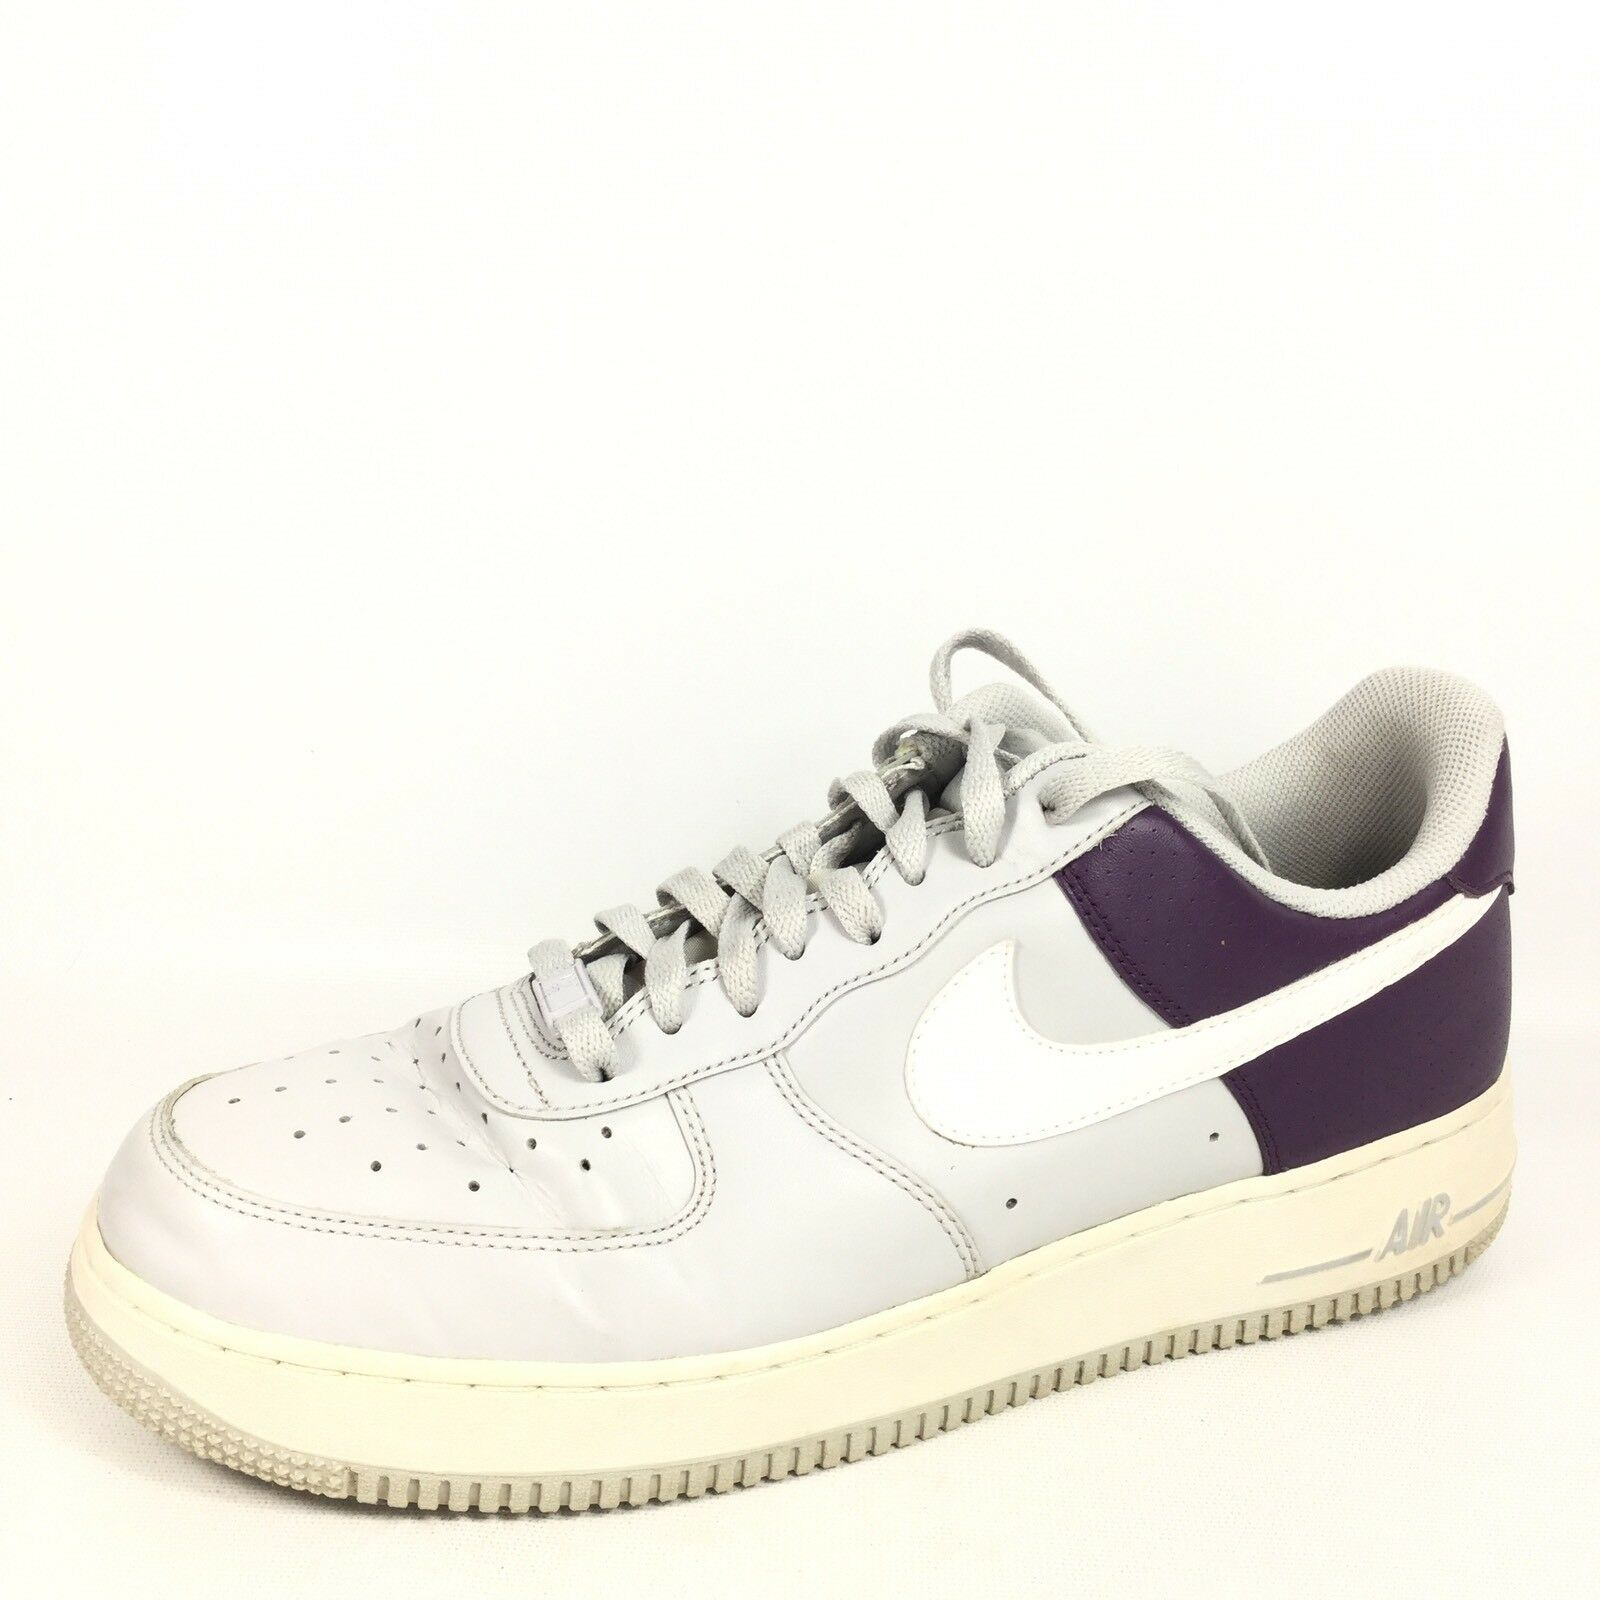 Nike Air Mens Size 11.5 M Grey/White/Lilac Sneakers.